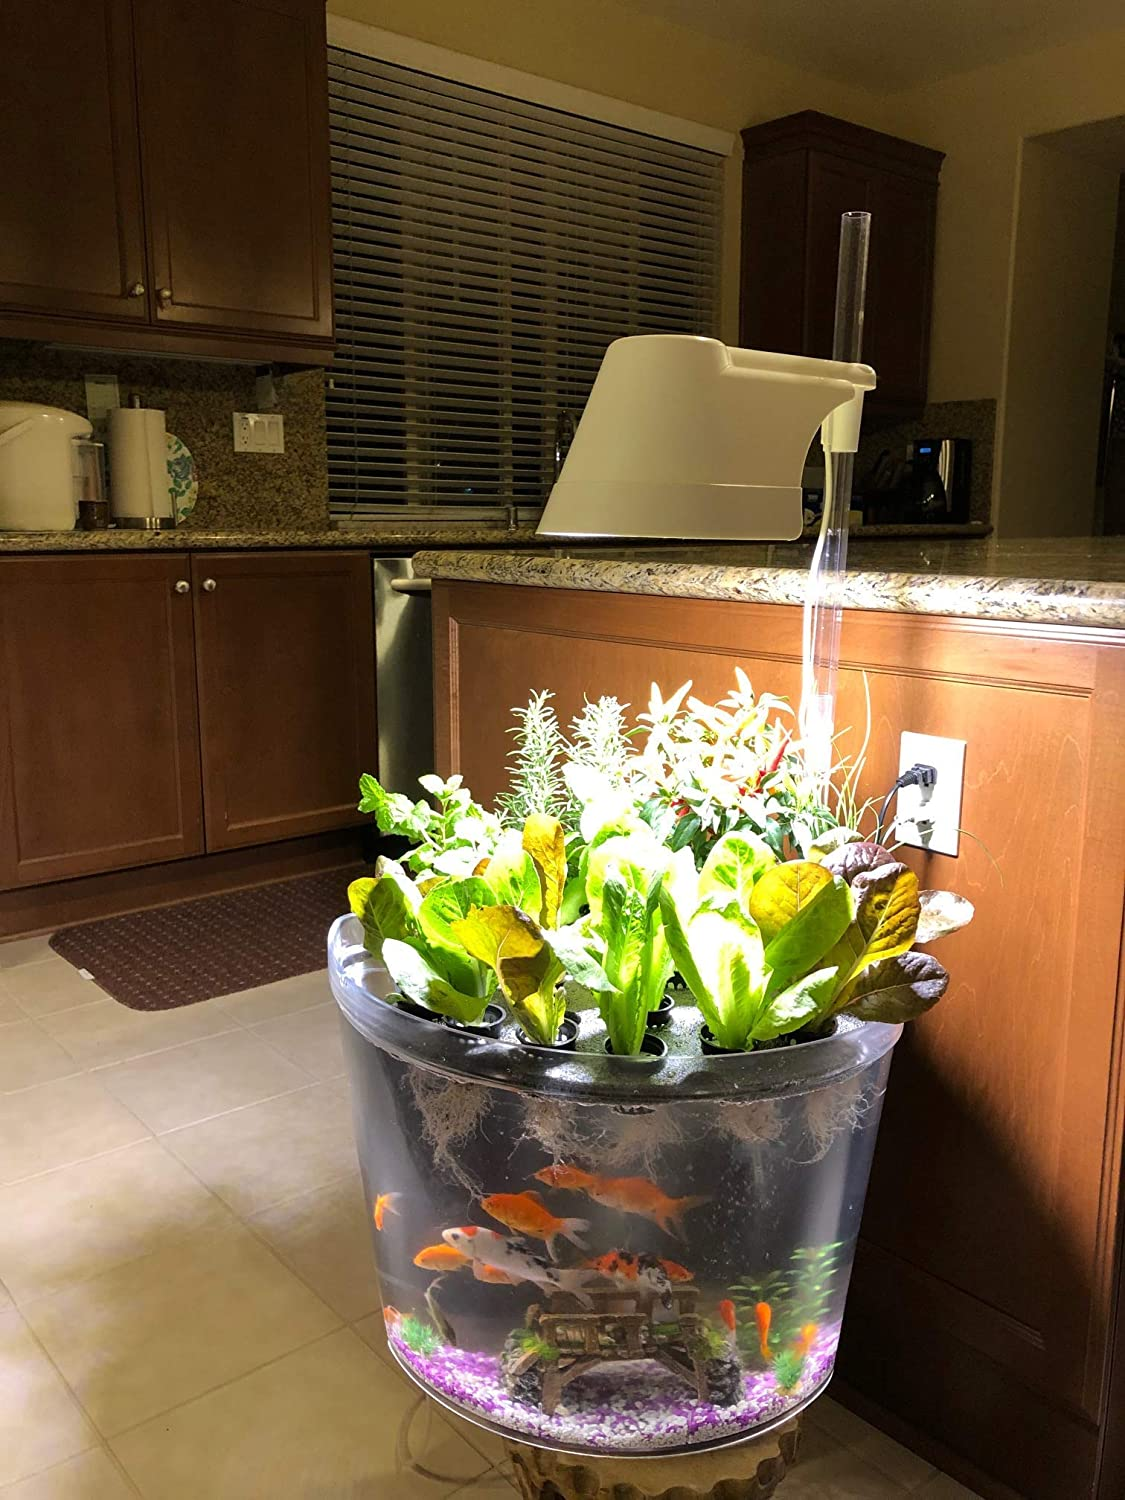 Kingro 20 in 20 Indoor Gardening Ecosystem Hydroponic/Aquaponic with Lighting  and Fish Tank